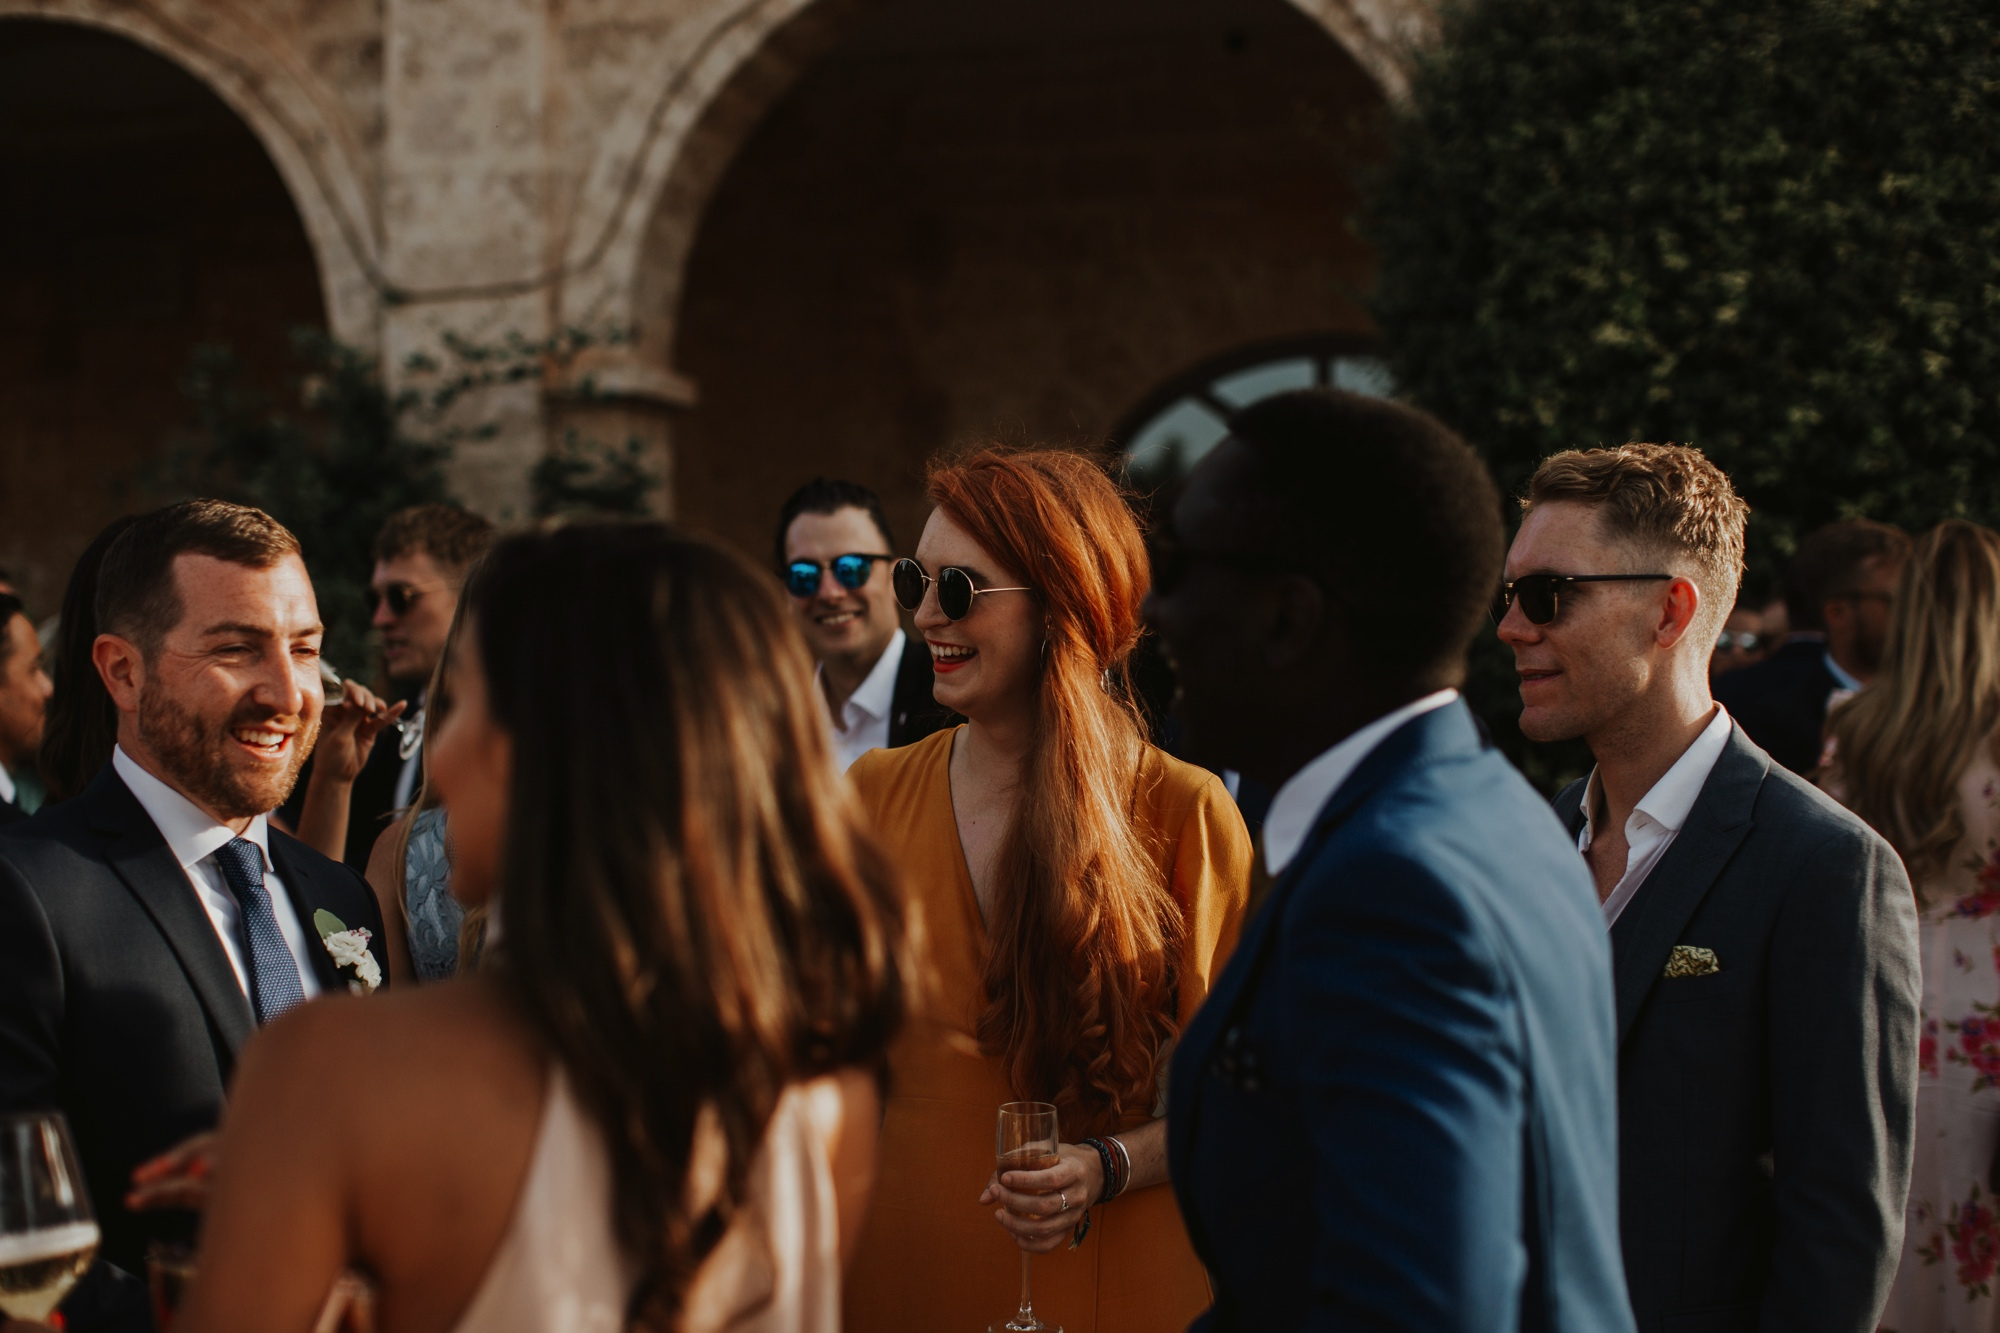 0000000052_Rob and Lucy-492_Weddings_Destination_Italy_got_Just_Engaged.jpg